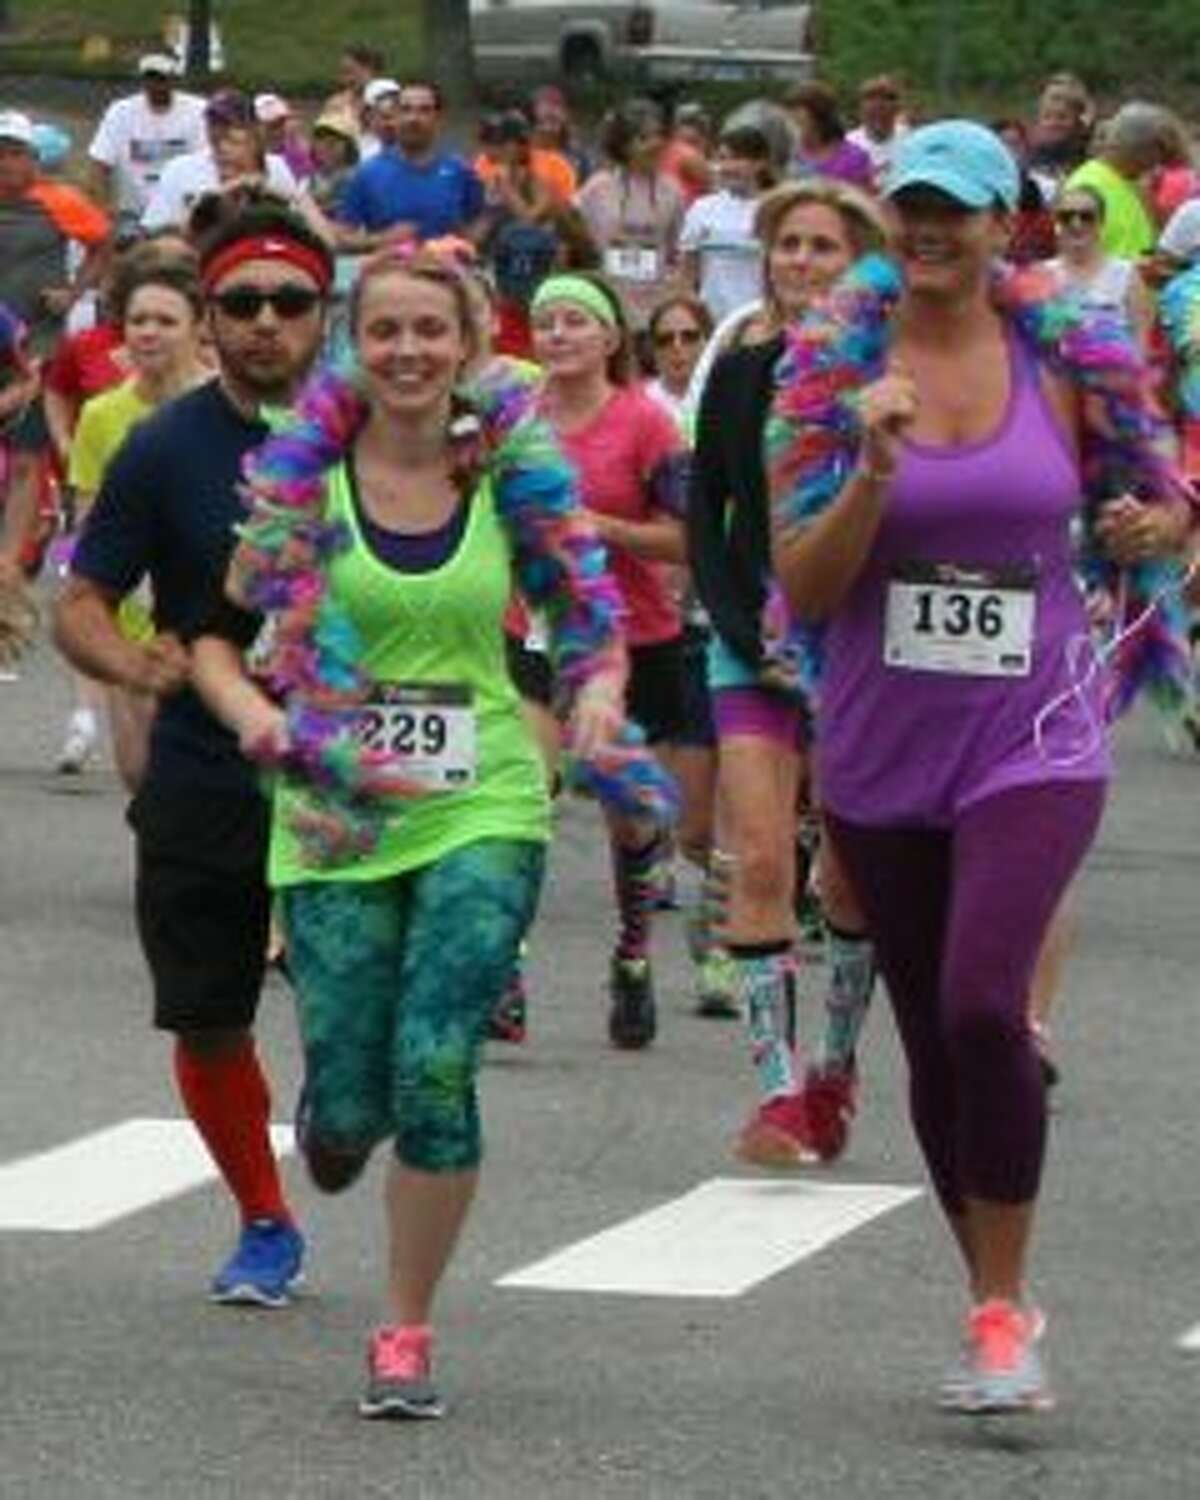 The 5K Run/Walk and Mile Stroll includes two designated routes: 5K Timed Race and 1 Mile Walk/Stroll,